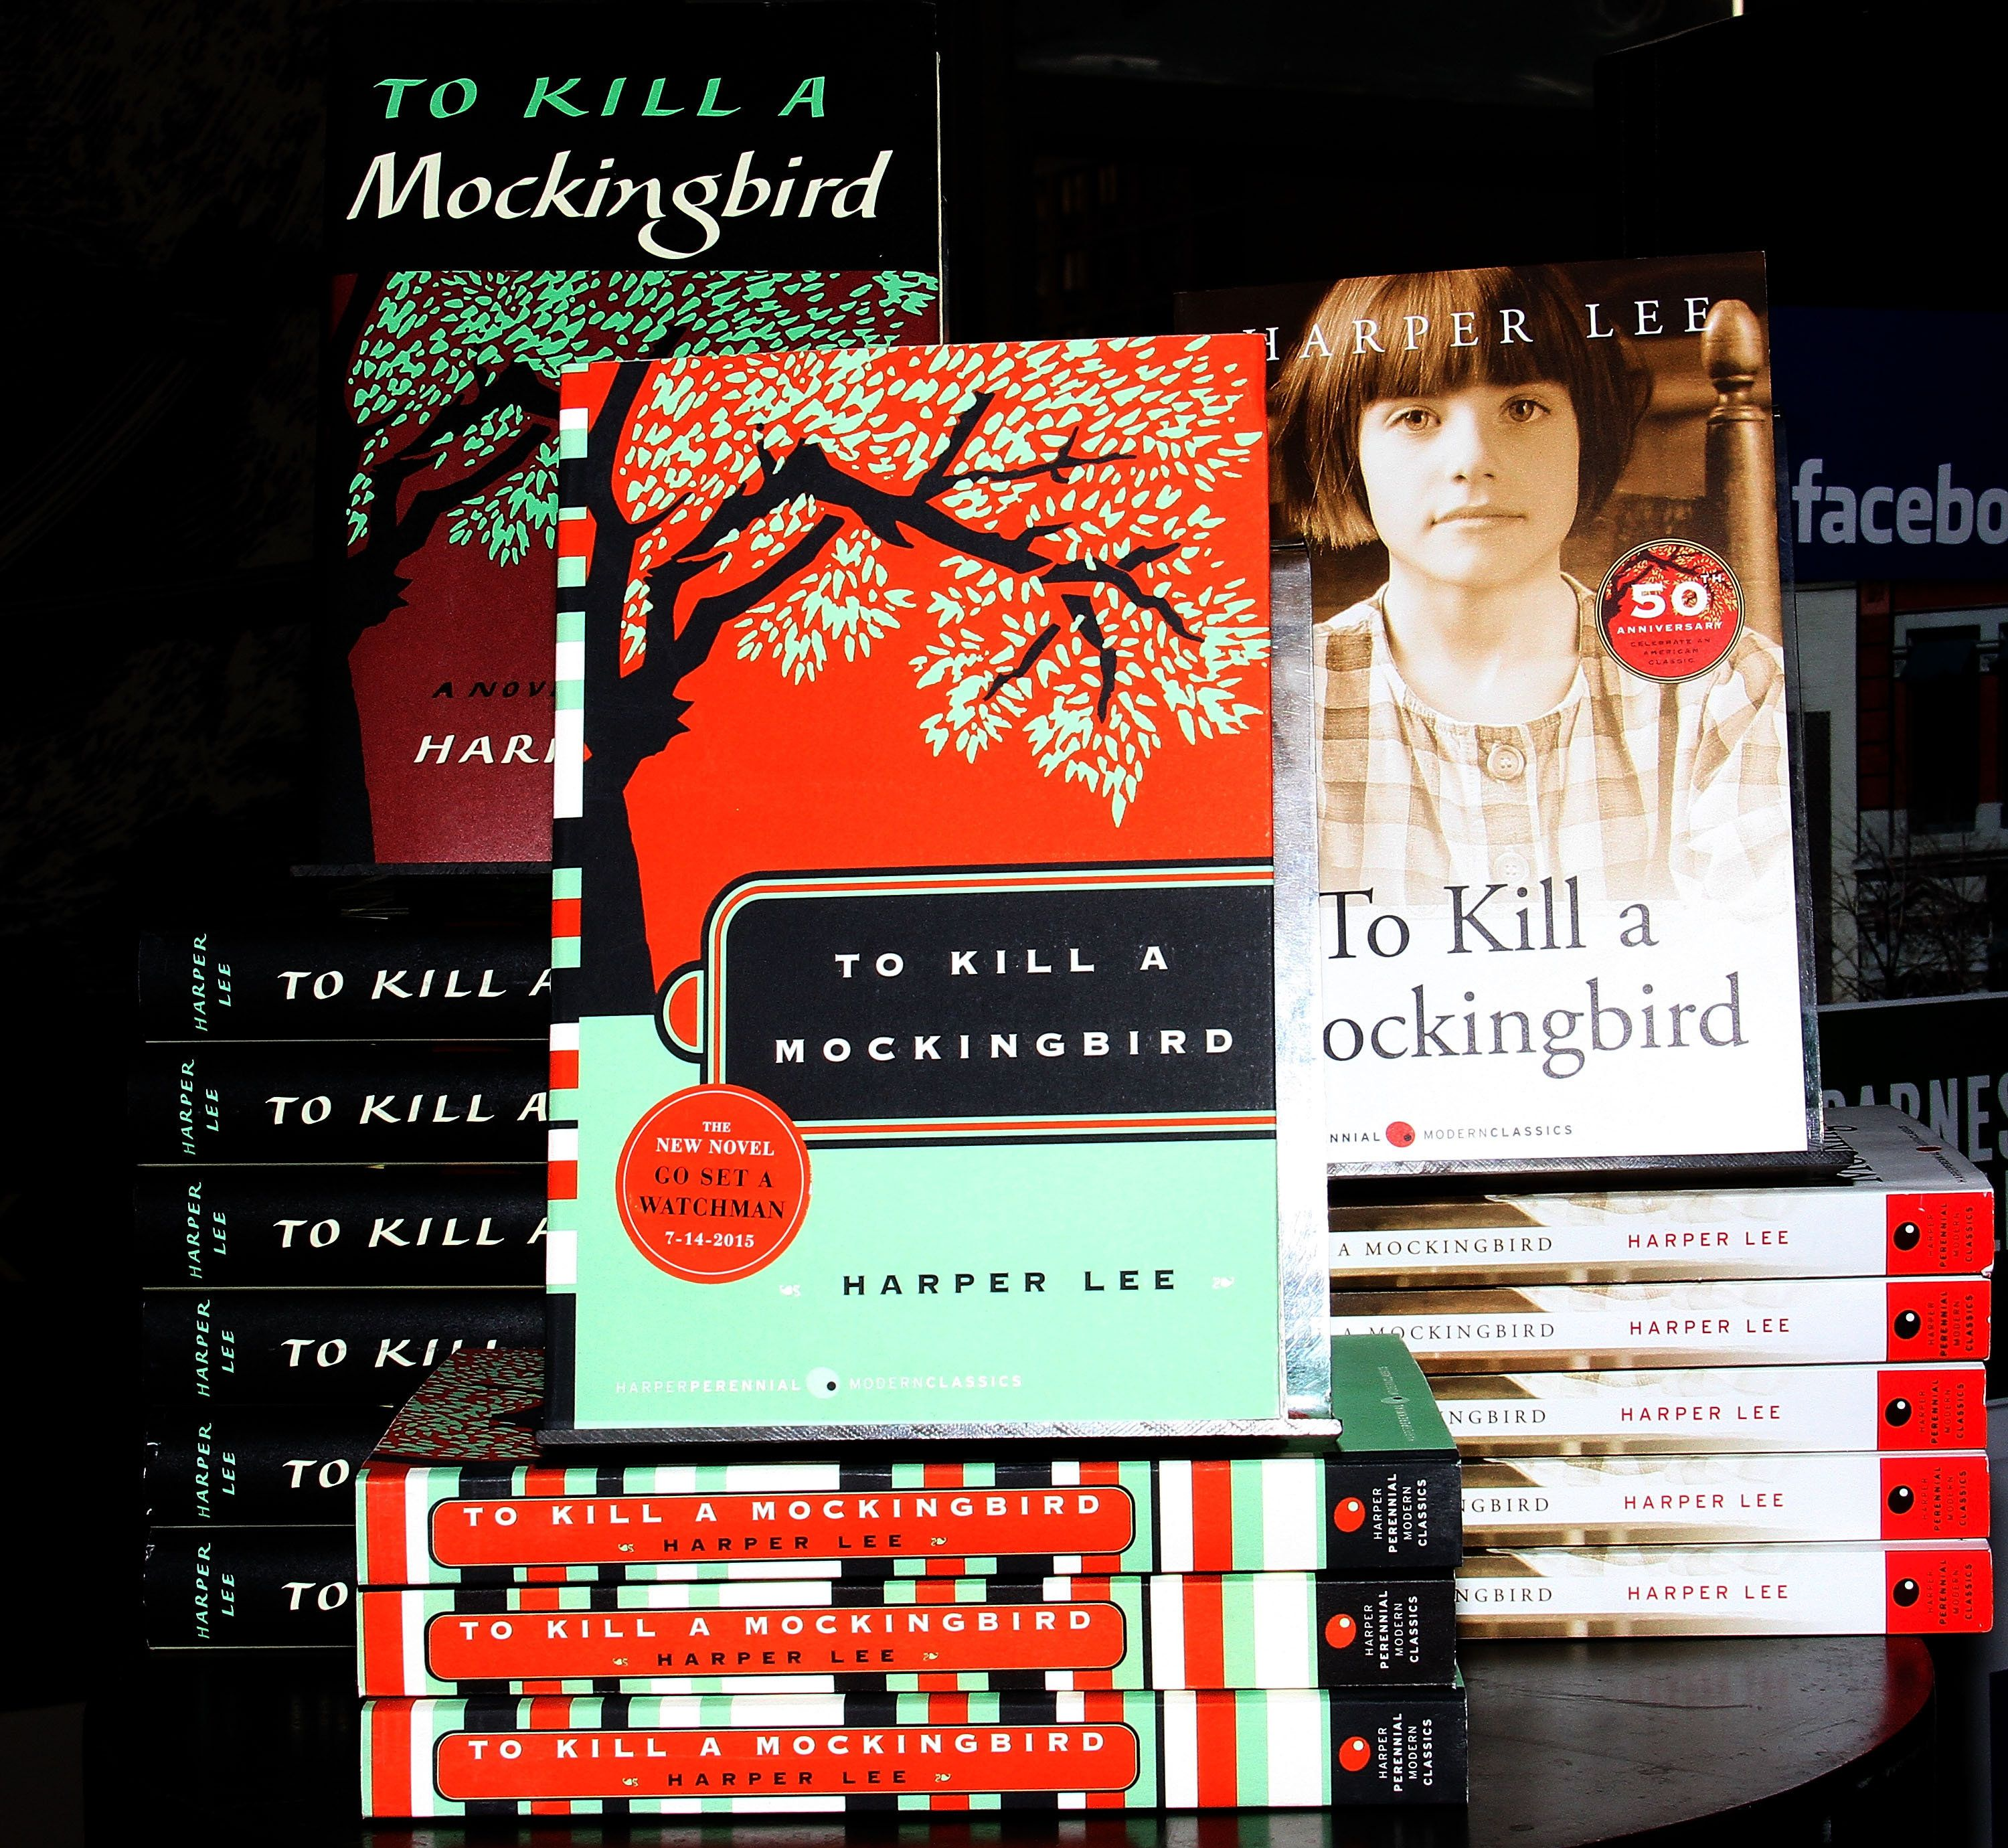 to kill a mocking bird the To kill a mockingbird by harper lee was written in the 1950s and published mid-1960 we shall explore the plot, characters and themes in the book the symbolism relied on by the author shall be addressed according to its relevance to the plot.